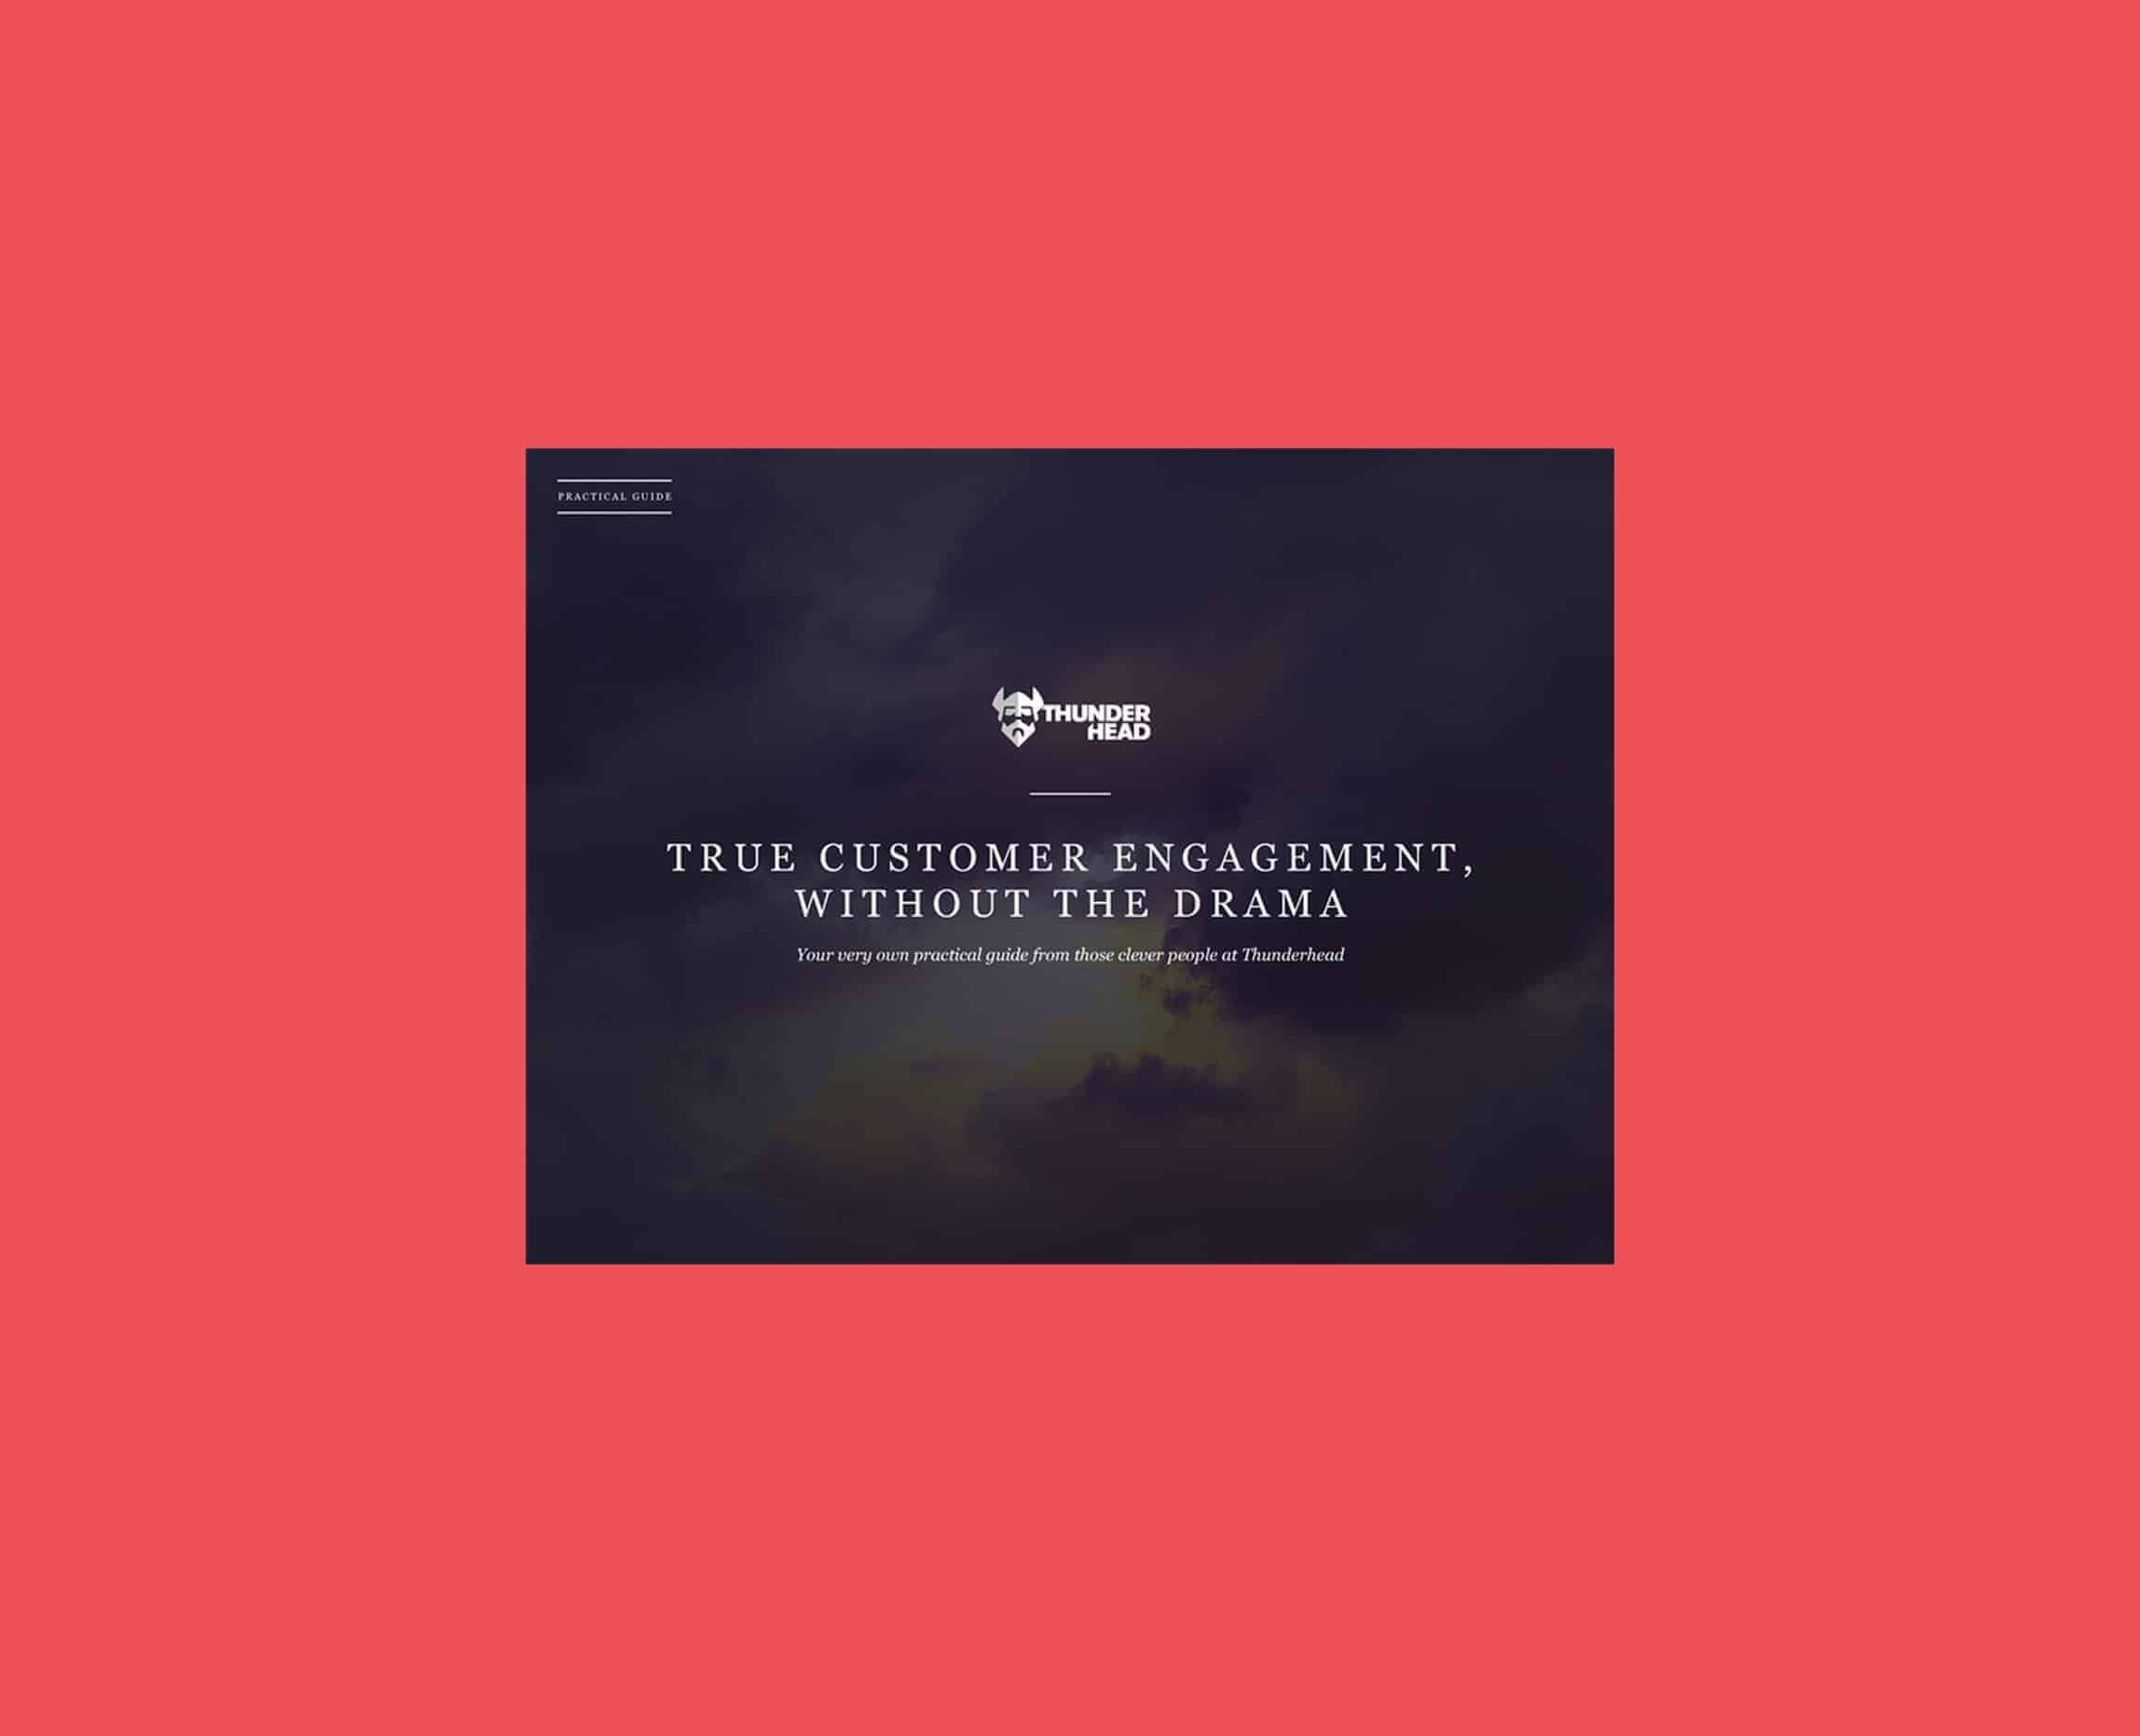 A screenshot of the customer engagement PDF on a pink background